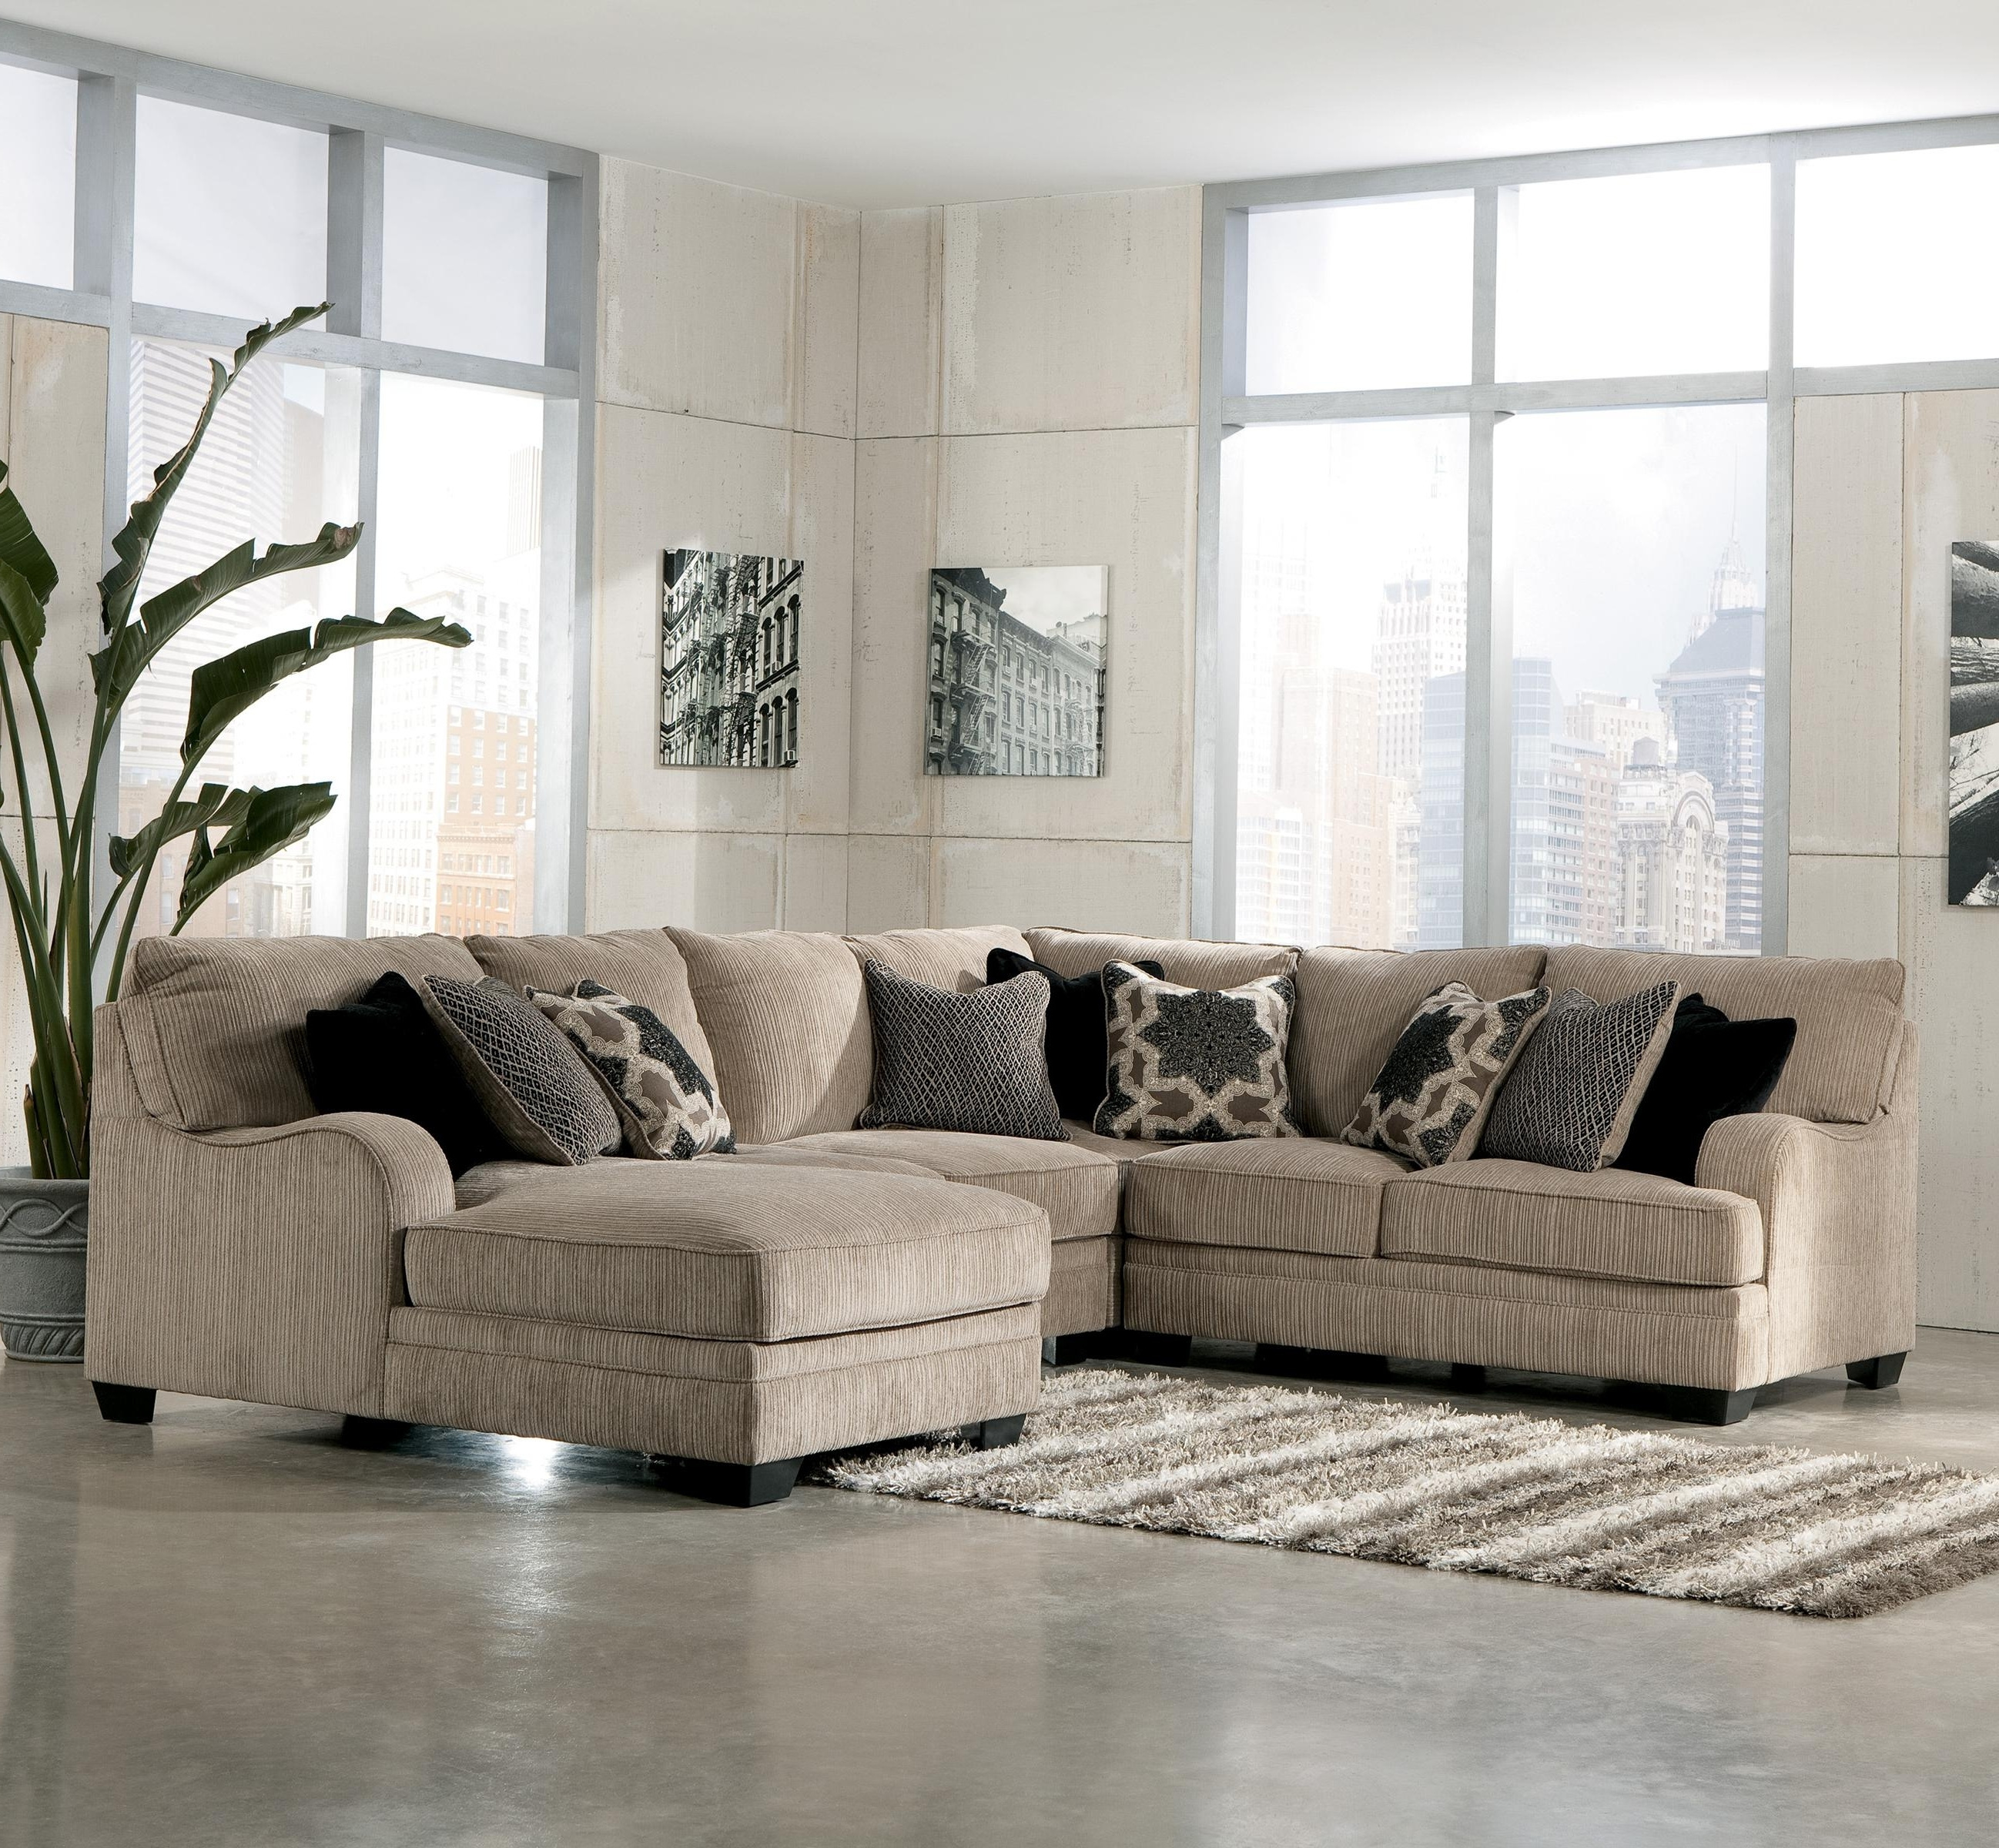 Widely Used Signature Designashley Katisha – Platinum 5 Piece Sectional For Peterborough Ontario Sectional Sofas (View 20 of 20)